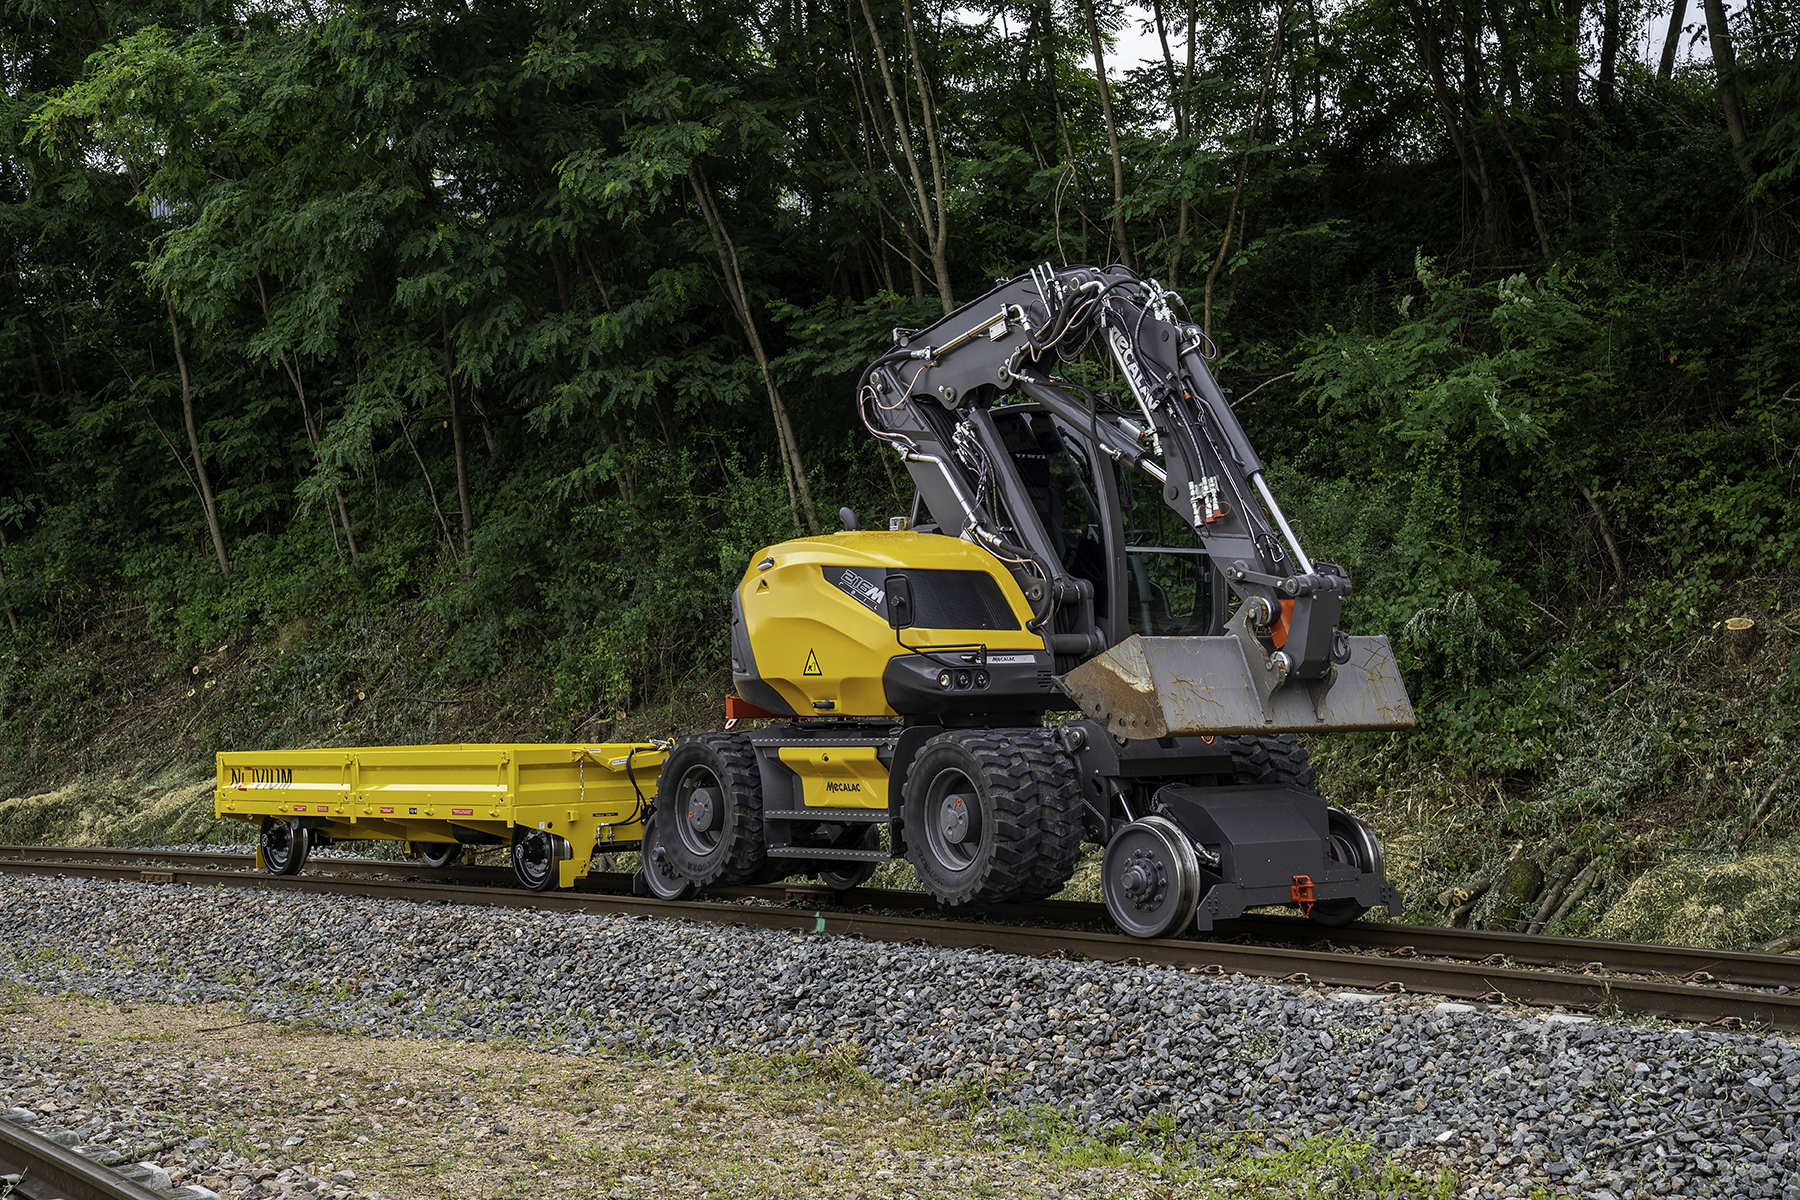 Mecalac launches 216MRail, its new rail-road excavator